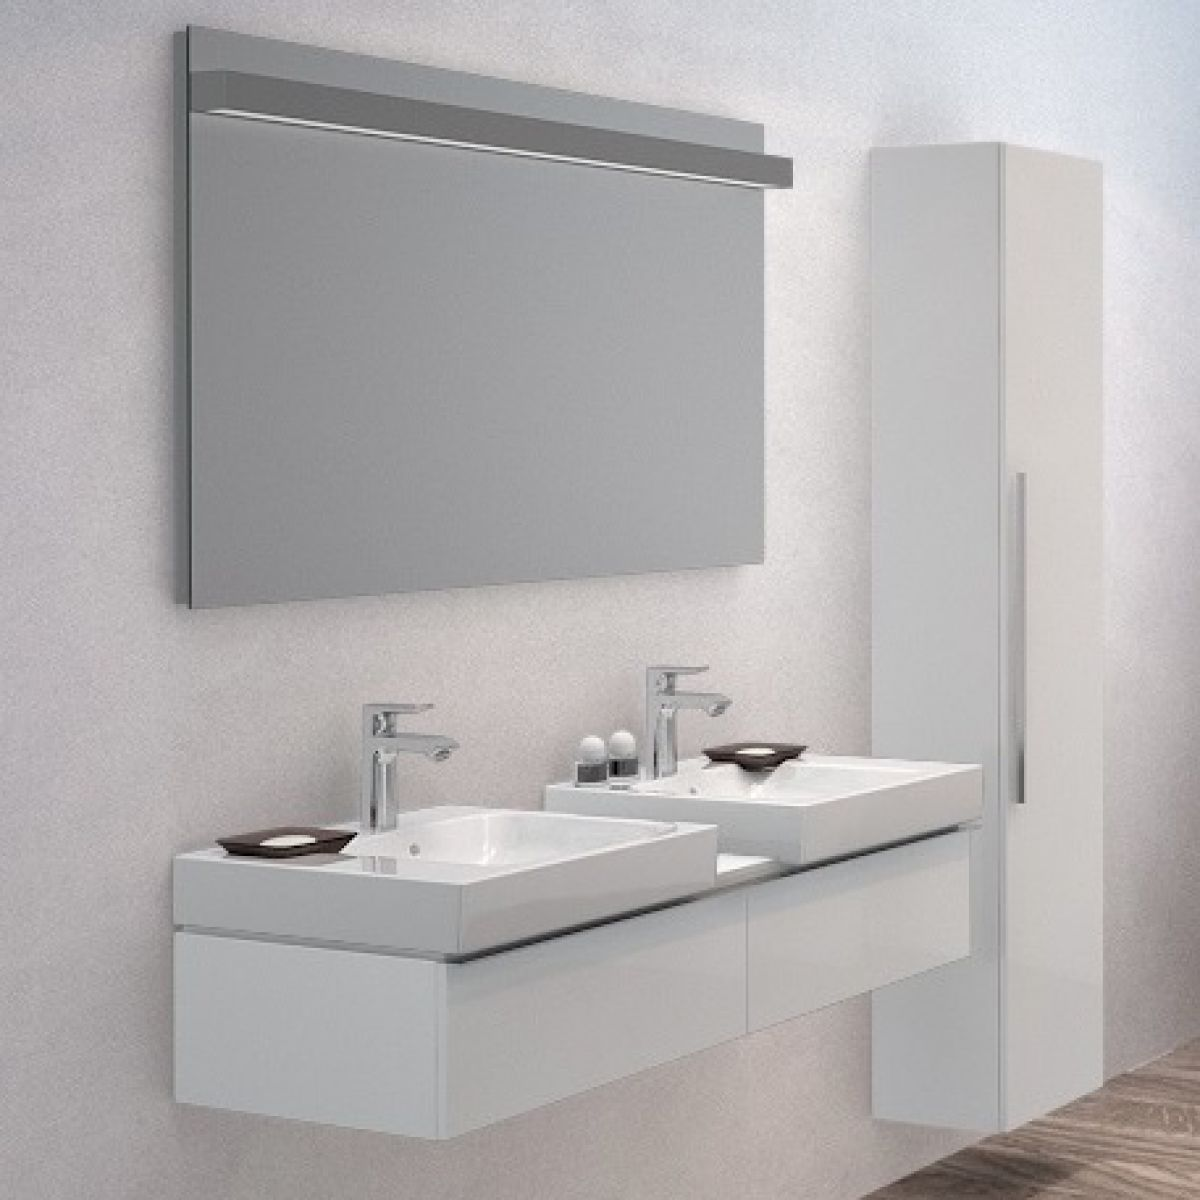 Geberit Icon Double Vanity Unit For Two 500mm Washbasins